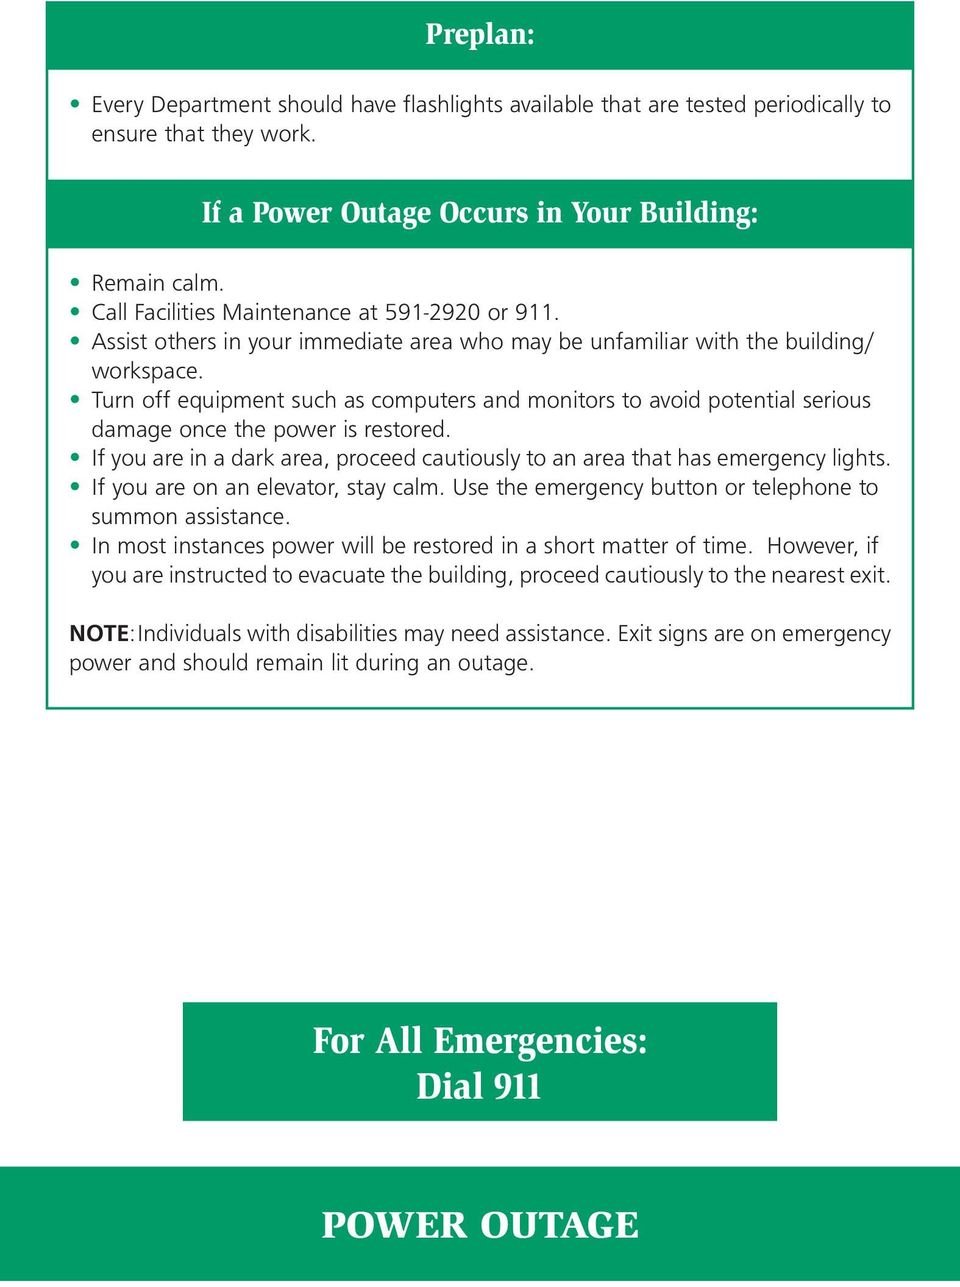 Turn off equipment such as computers and monitors to avoid potential serious damage once the power is restored. If you are in a dark area, proceed cautiously to an area that has emergency lights.